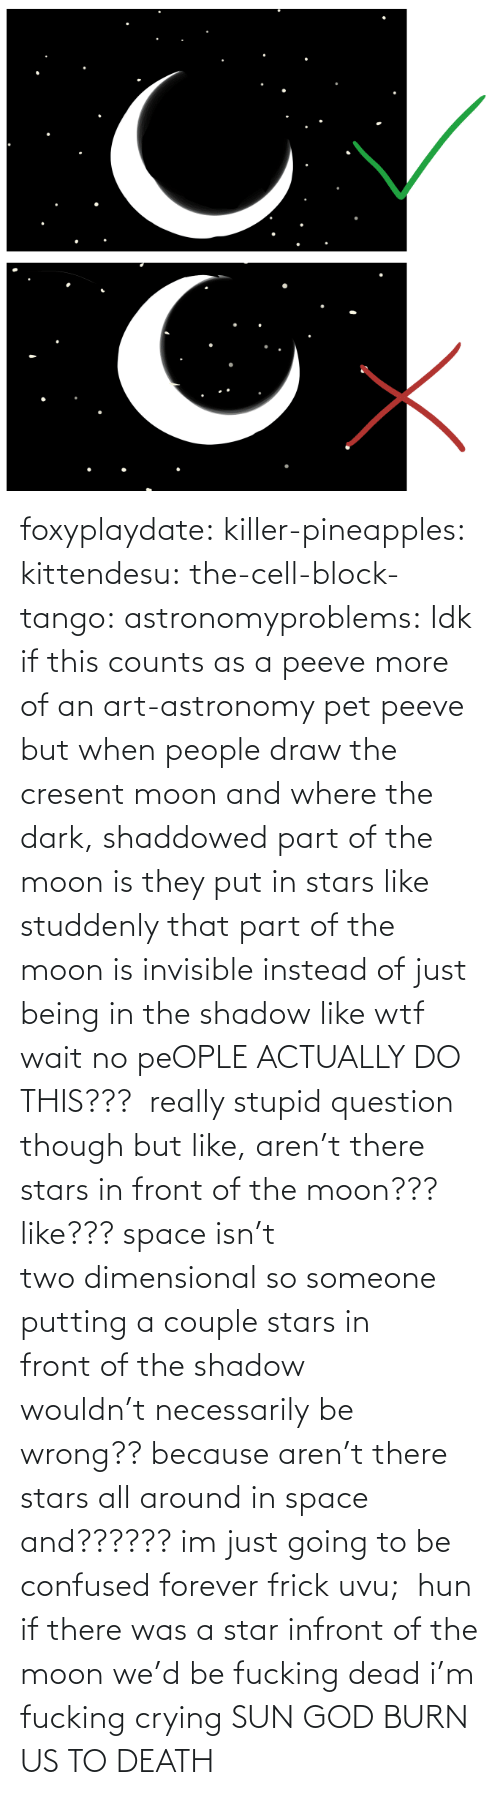 block: foxyplaydate: killer-pineapples:  kittendesu:  the-cell-block-tango:  astronomyproblems:  Idk if this counts as a peeve more of an art-astronomy pet peeve but when people draw the cresent moon and where the dark, shaddowed part of the moon is they put in stars like studdenly that part of the moon is invisible instead of just being in the shadow like wtf  wait no peOPLE ACTUALLY DO THIS???   really stupid question though but like, aren't there stars in front of the moon??? like??? space isn't two dimensional so someone putting a couple stars in front of the shadow wouldn't necessarily be wrong?? because aren't there stars all around in space and?????? im just going to be confused forever frick uvu;   hun if there was a star infront of the moon we'd be fucking dead  i'm fucking crying    SUN GOD BURN US TO DEATH